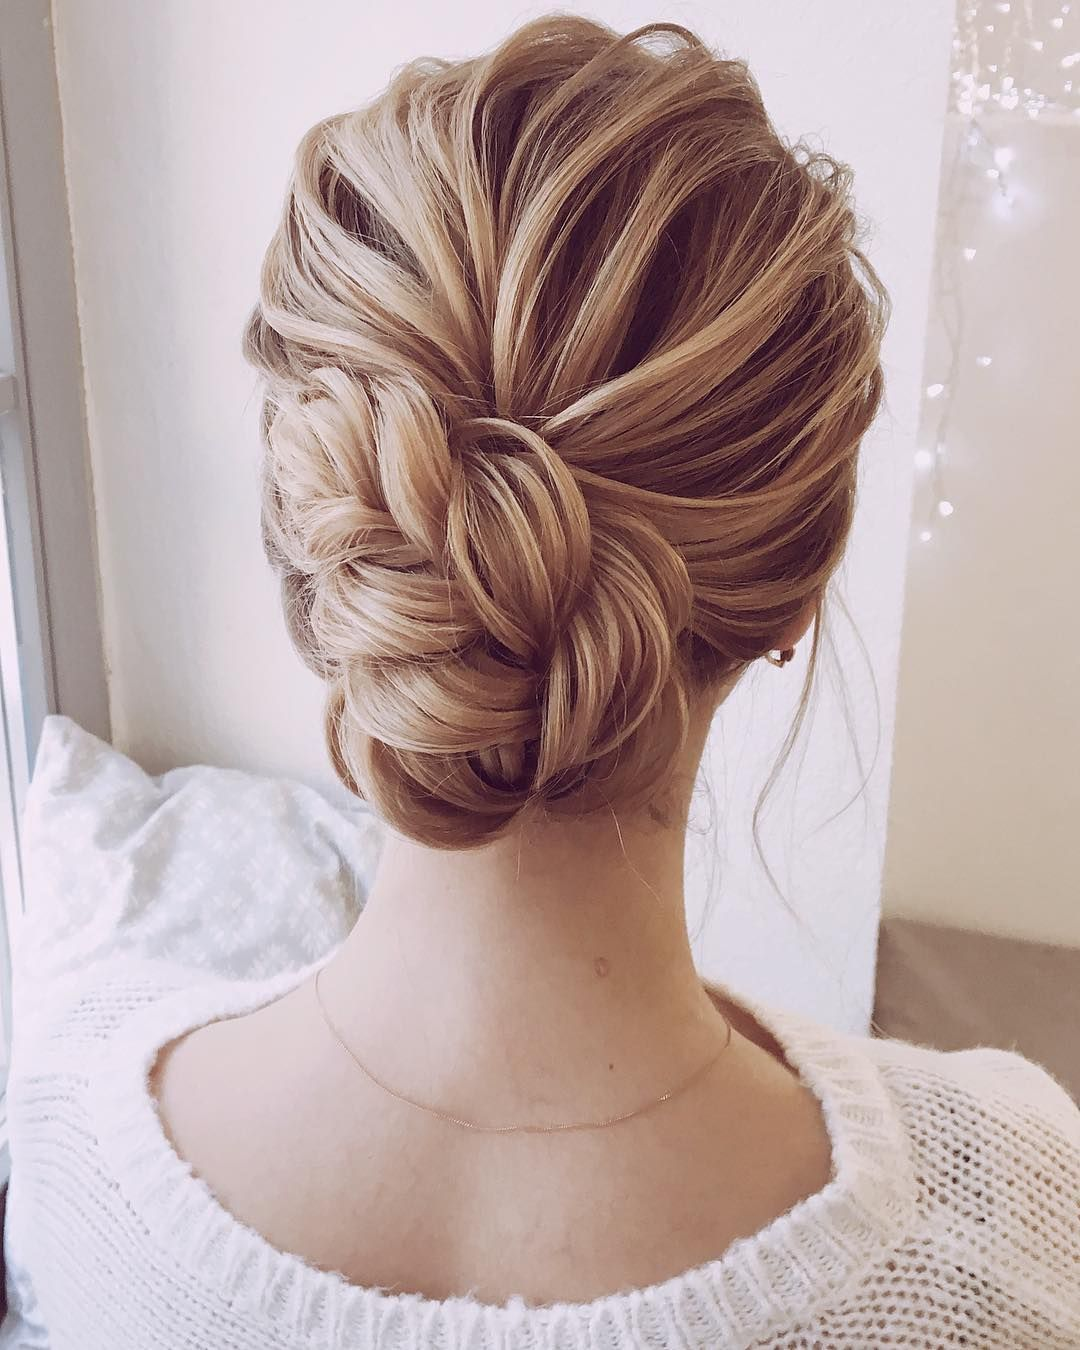 Jaw dropping wedding updo hairstyle